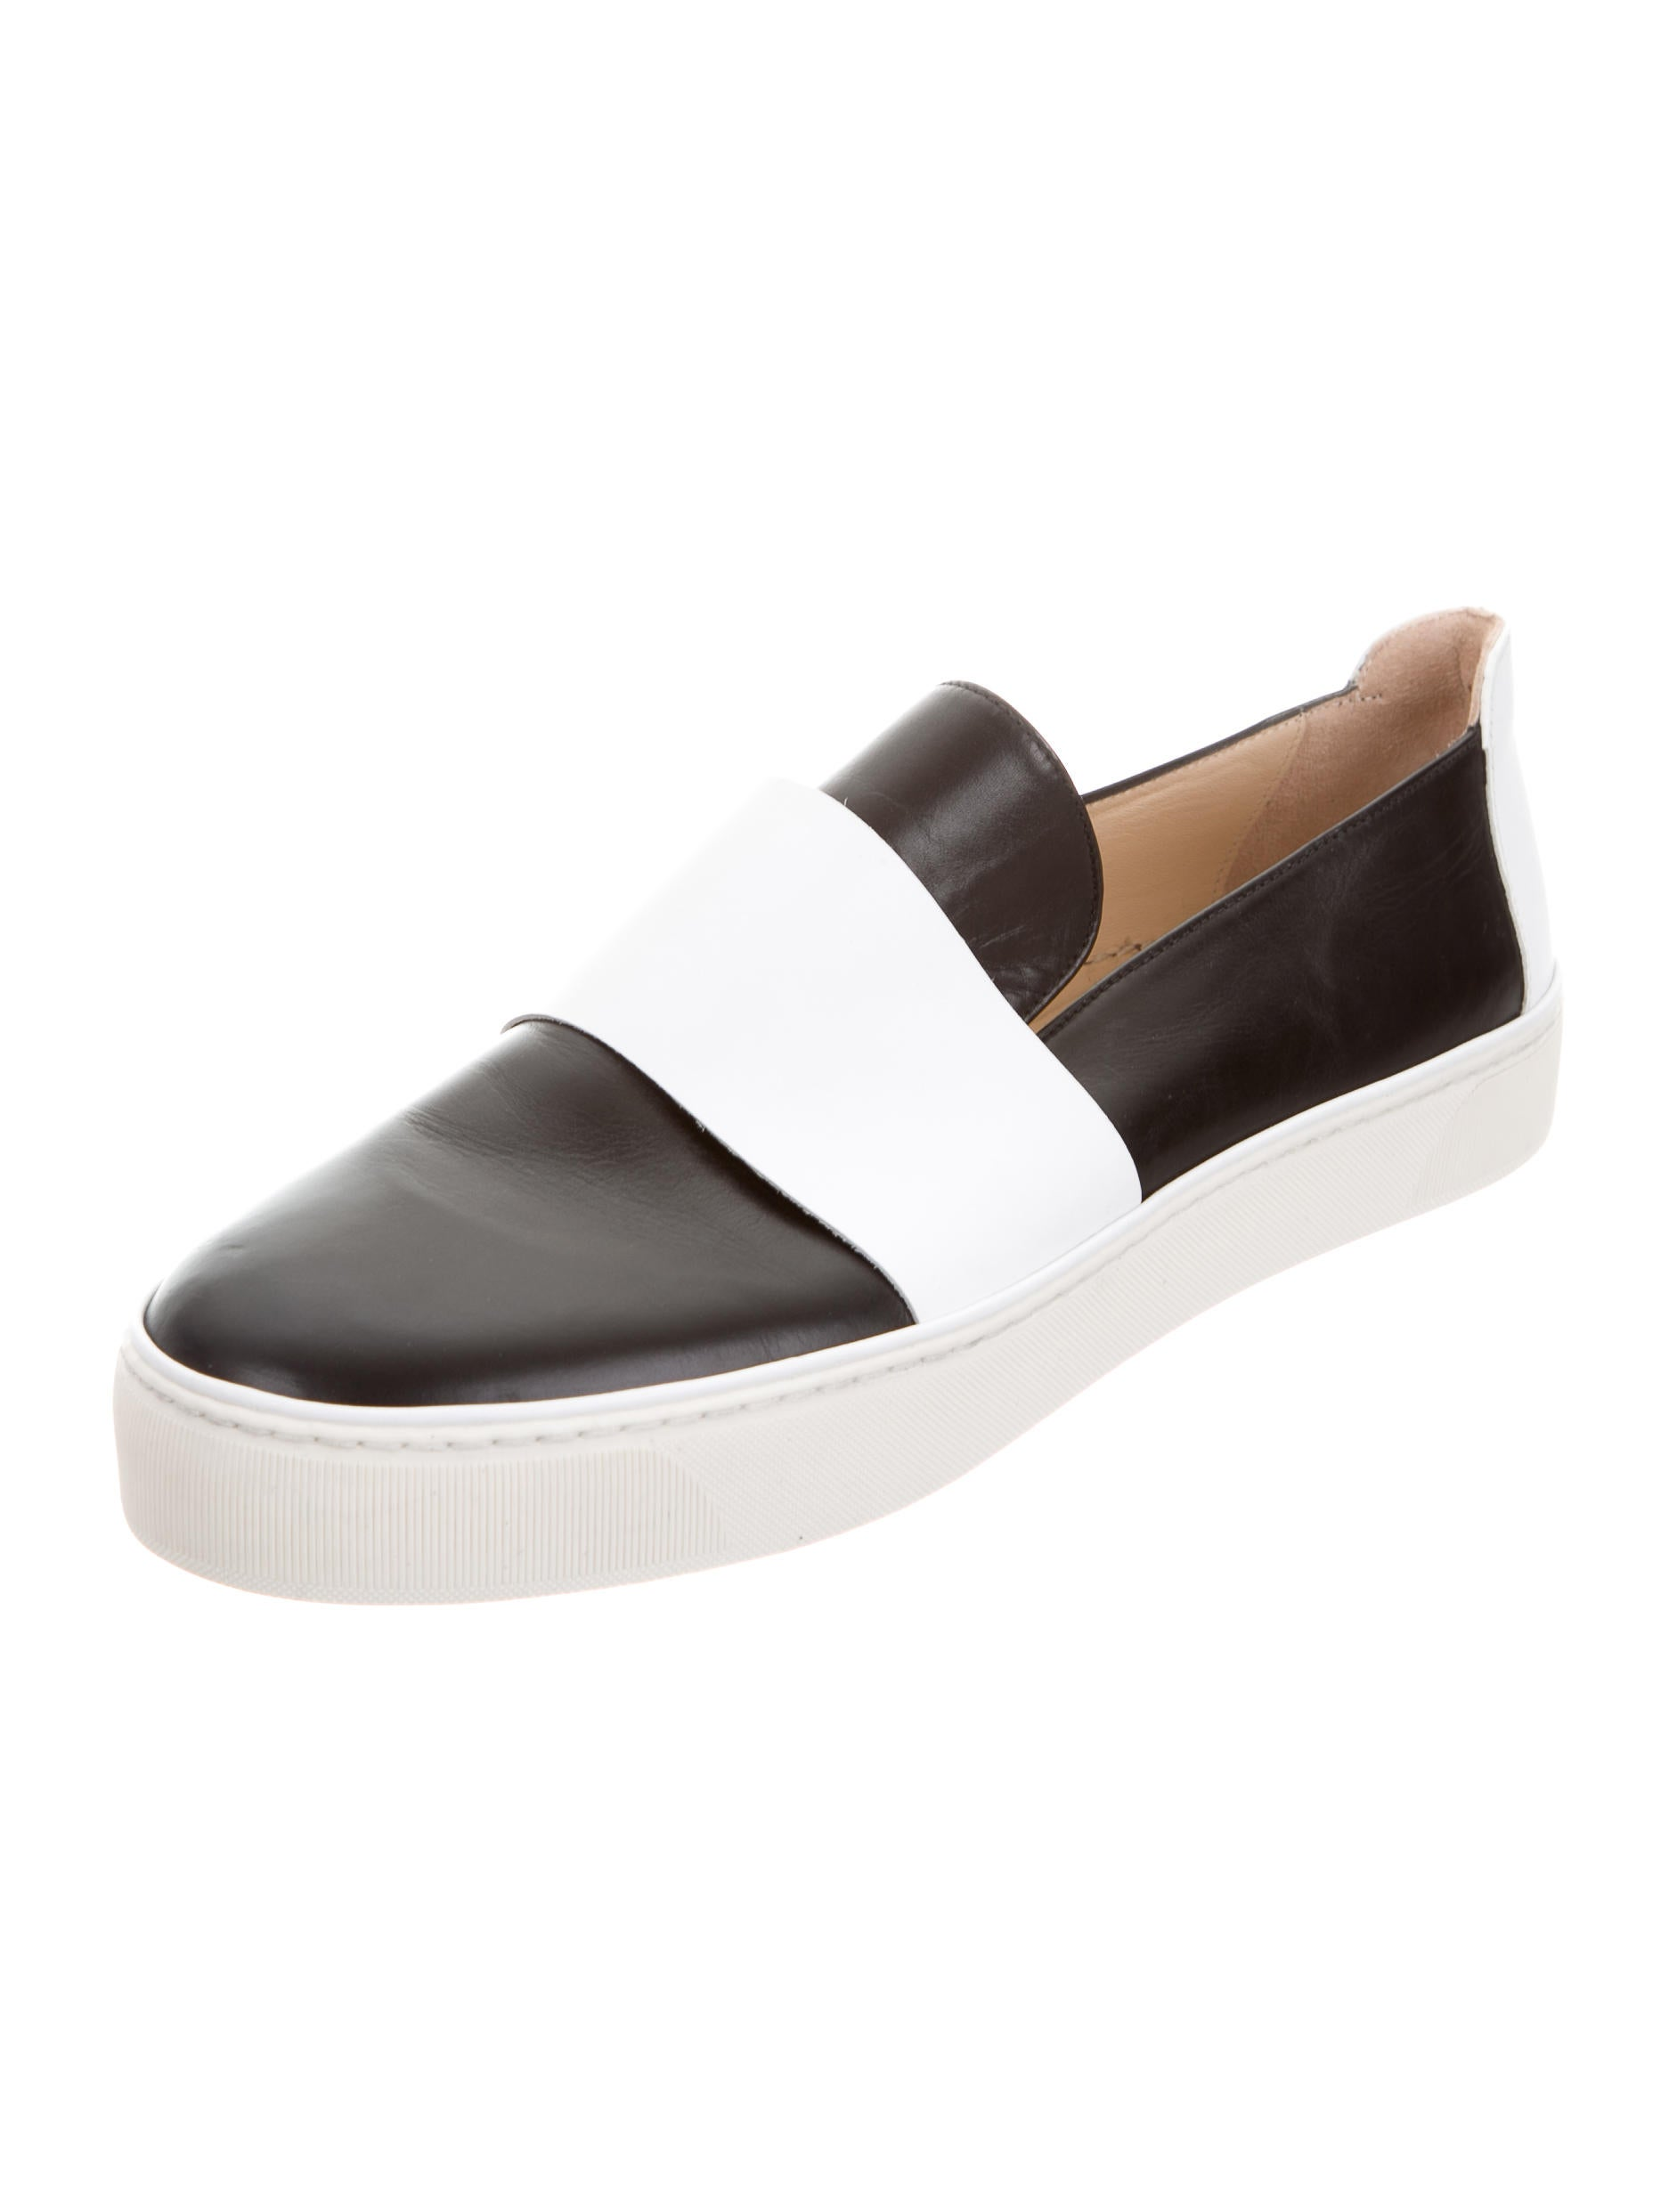 Free shipping BOTH ways on black leather slip on sneakers, from our vast selection of styles. Fast delivery, and 24/7/ real-person service with a smile. Click or call